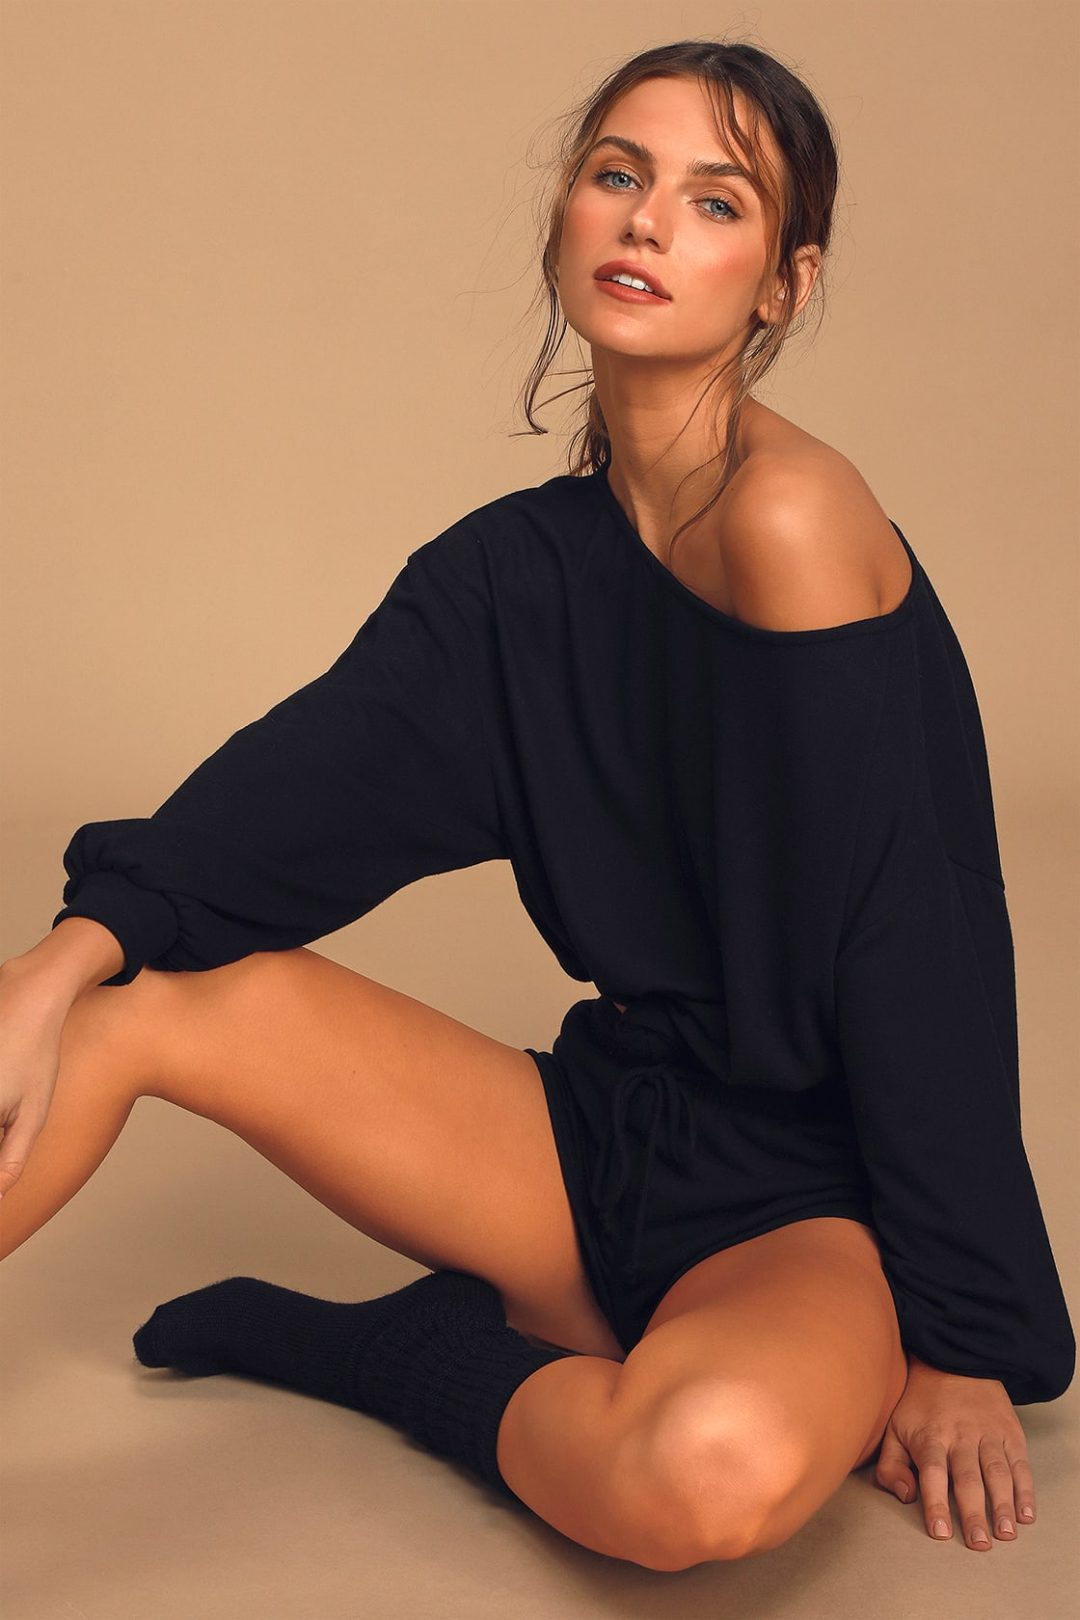 Loose black sweater to wear after self tanning